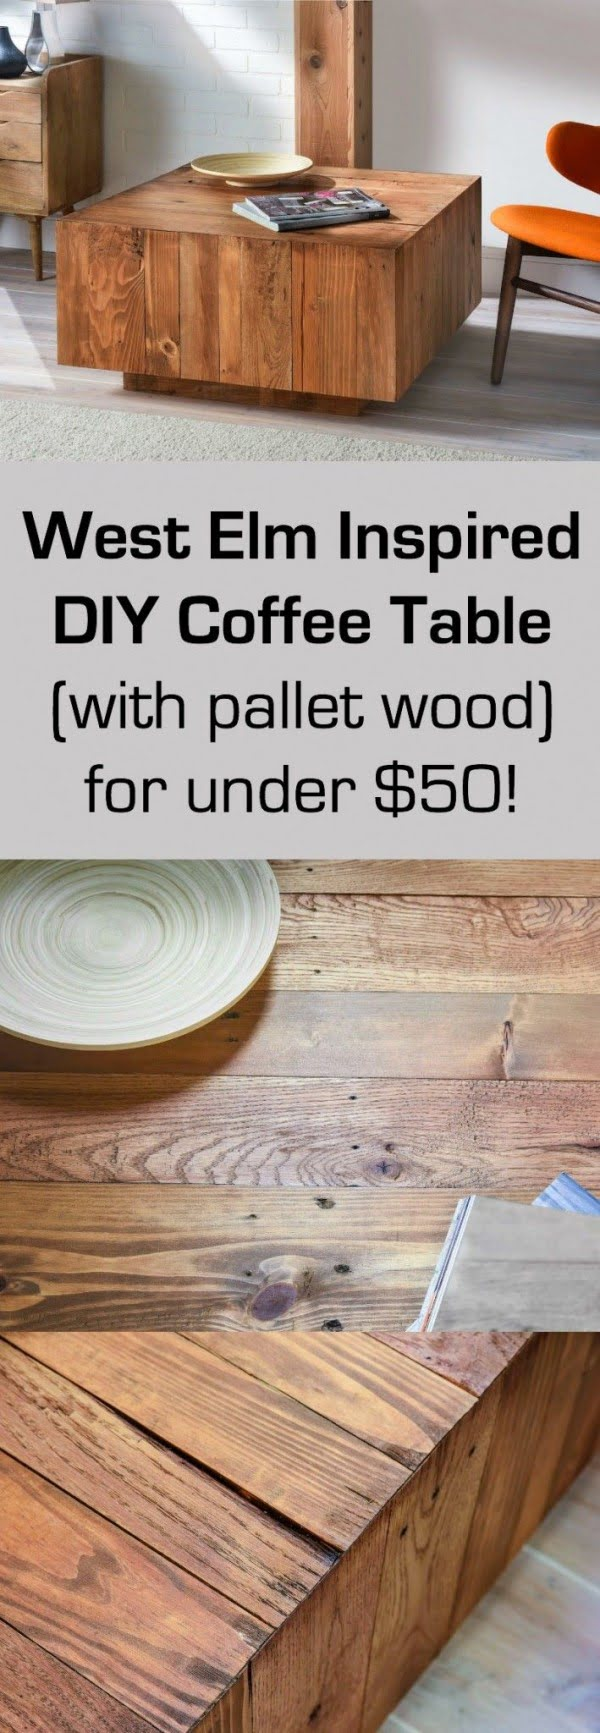 Check out the tutorial on how to make a #DIY West Elm inspired coffee table. Looks easy enough! #HomeDecorIdeas